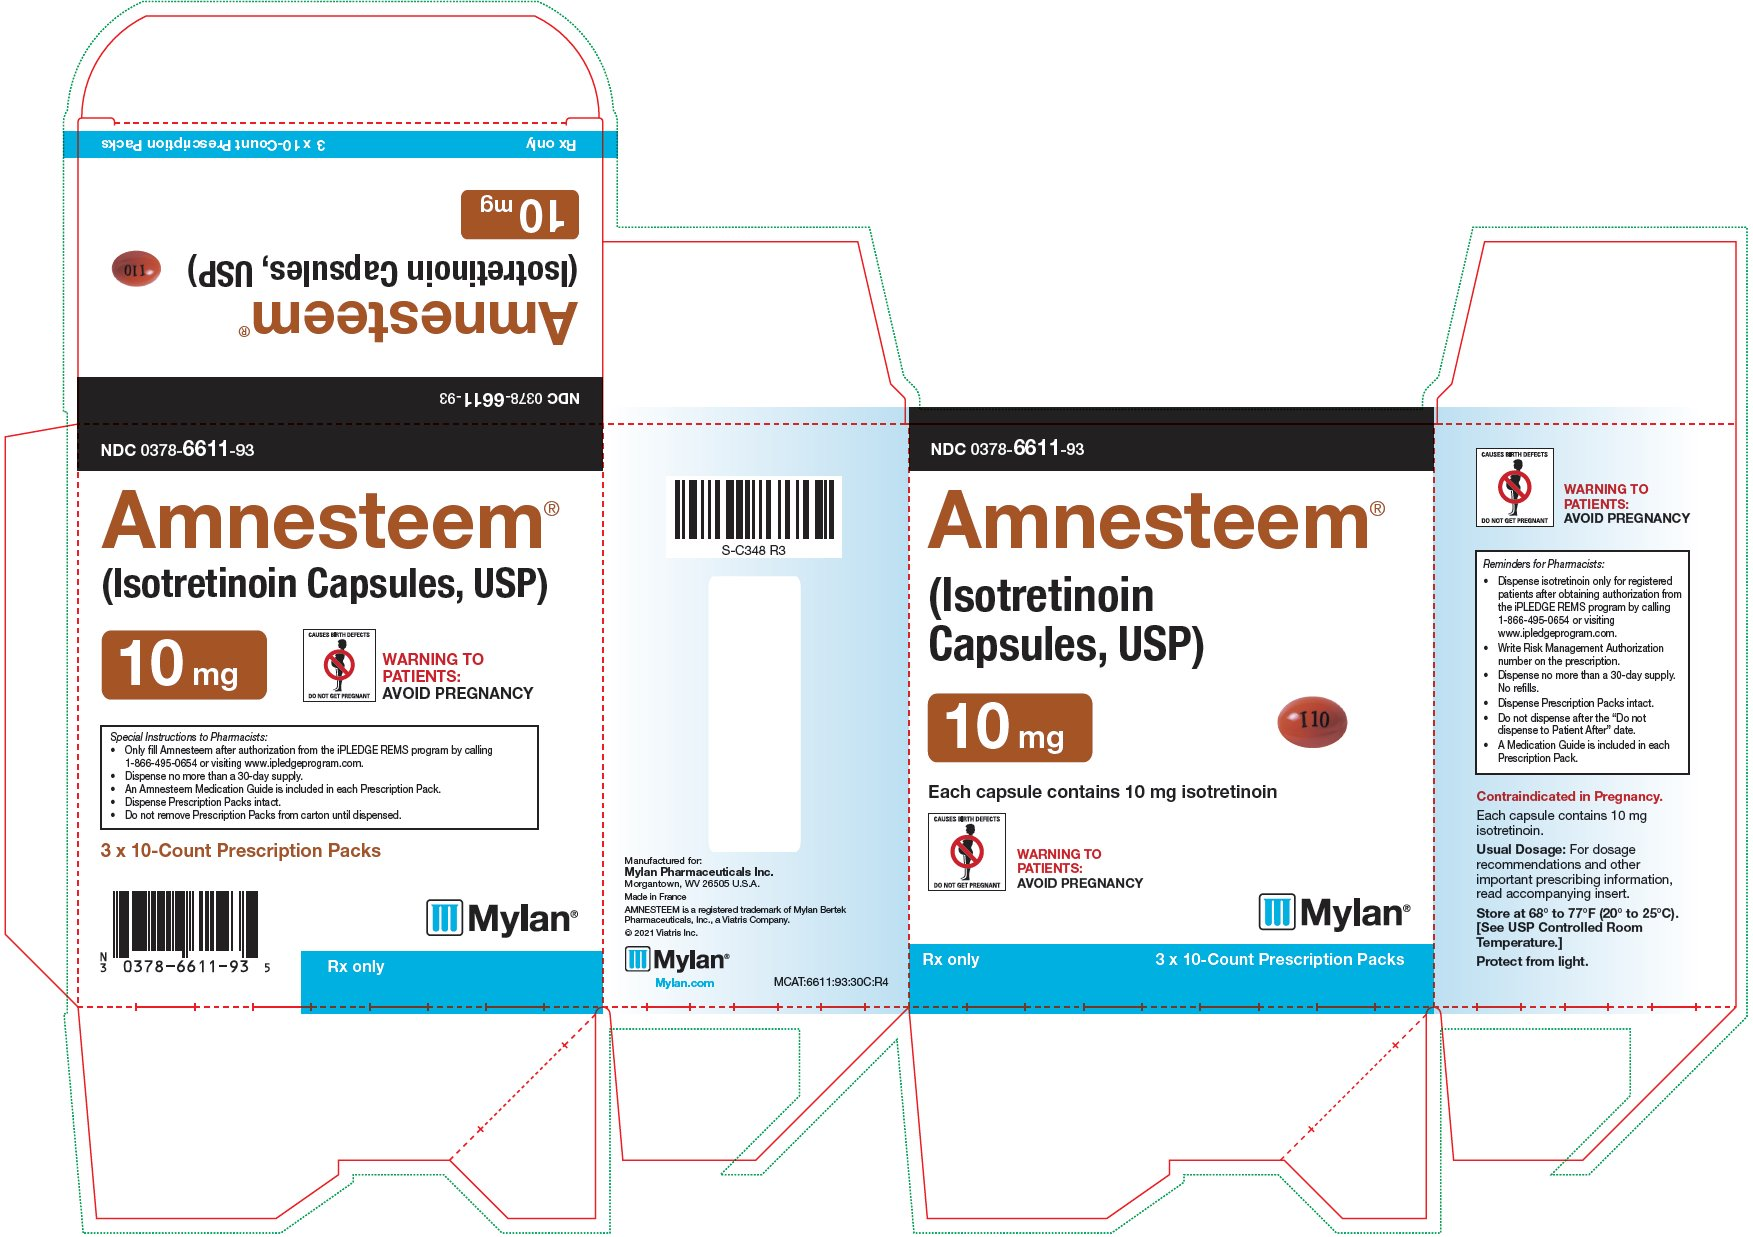 Amnesteem Capsules, USP 10 mg Carton Label